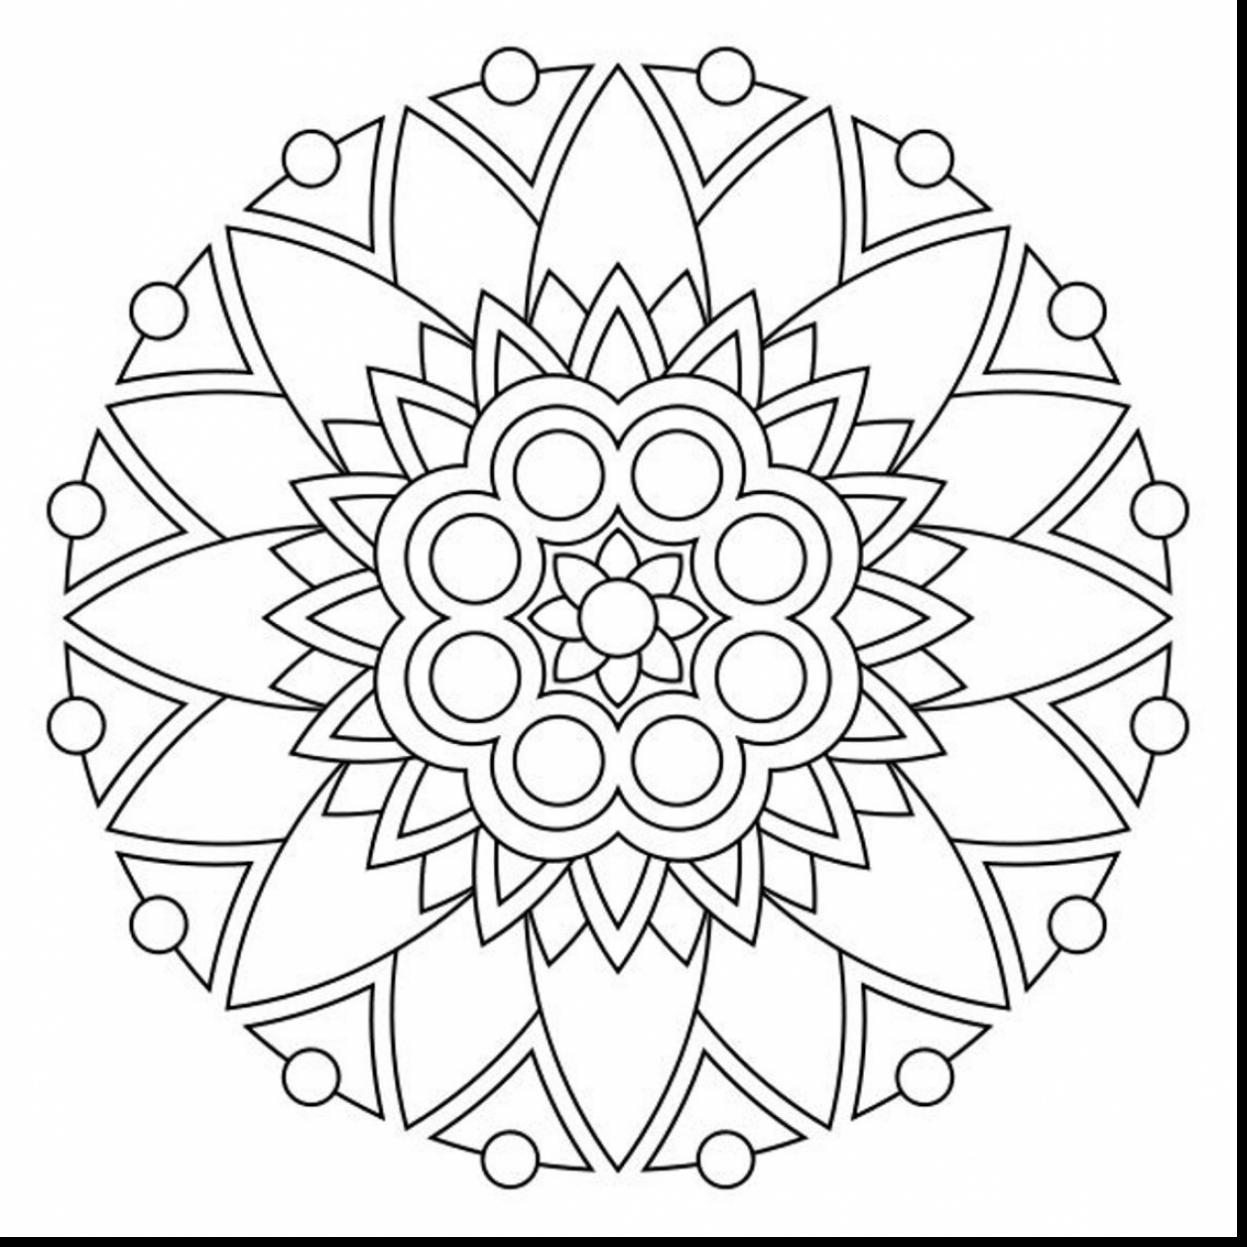 Free Mandala Coloring Pages Free Mandala Coloring Pages To Print Printable Mandala Coloring